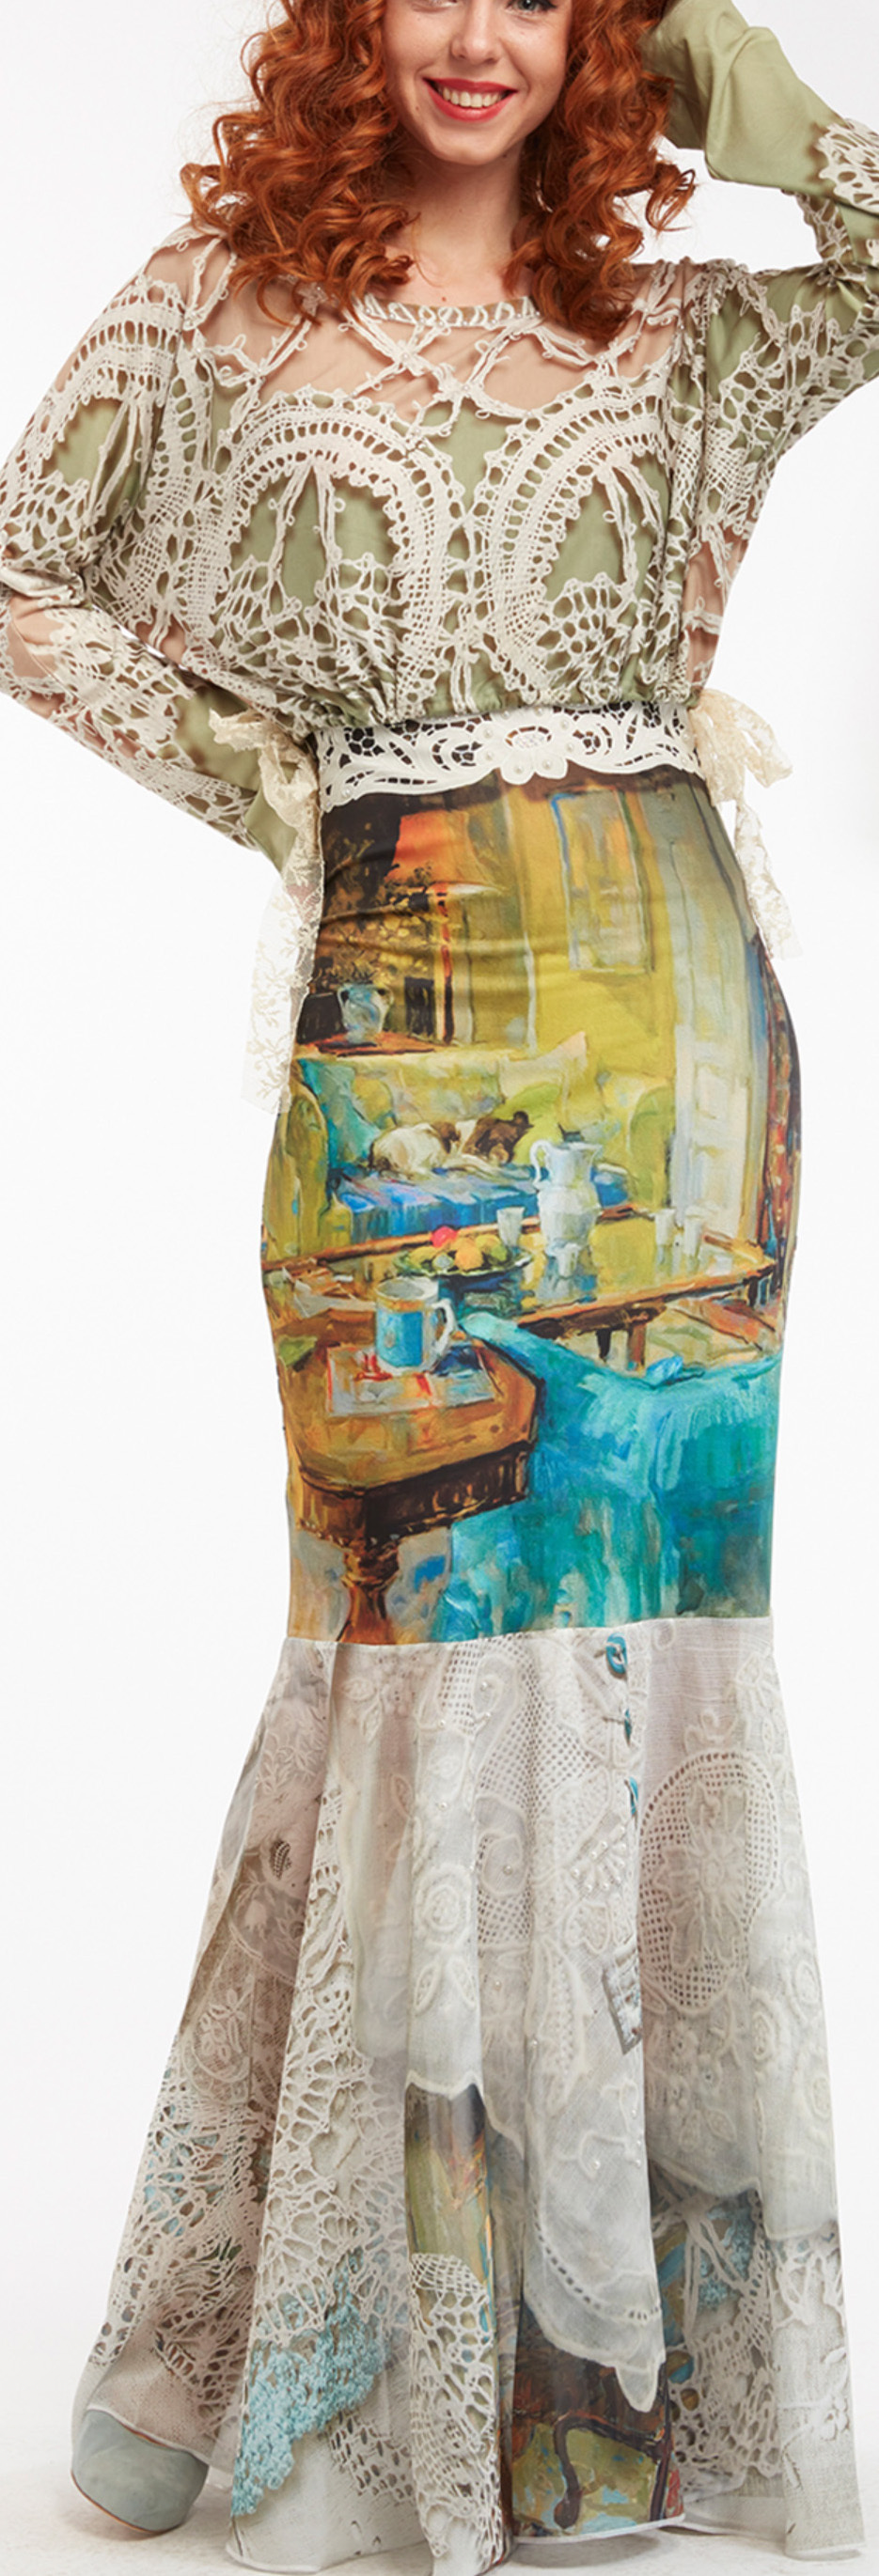 IPNG: Emerald Living Room Illusion Poetic Layers Mermaid Skirt IPNG_PLSKRL-073